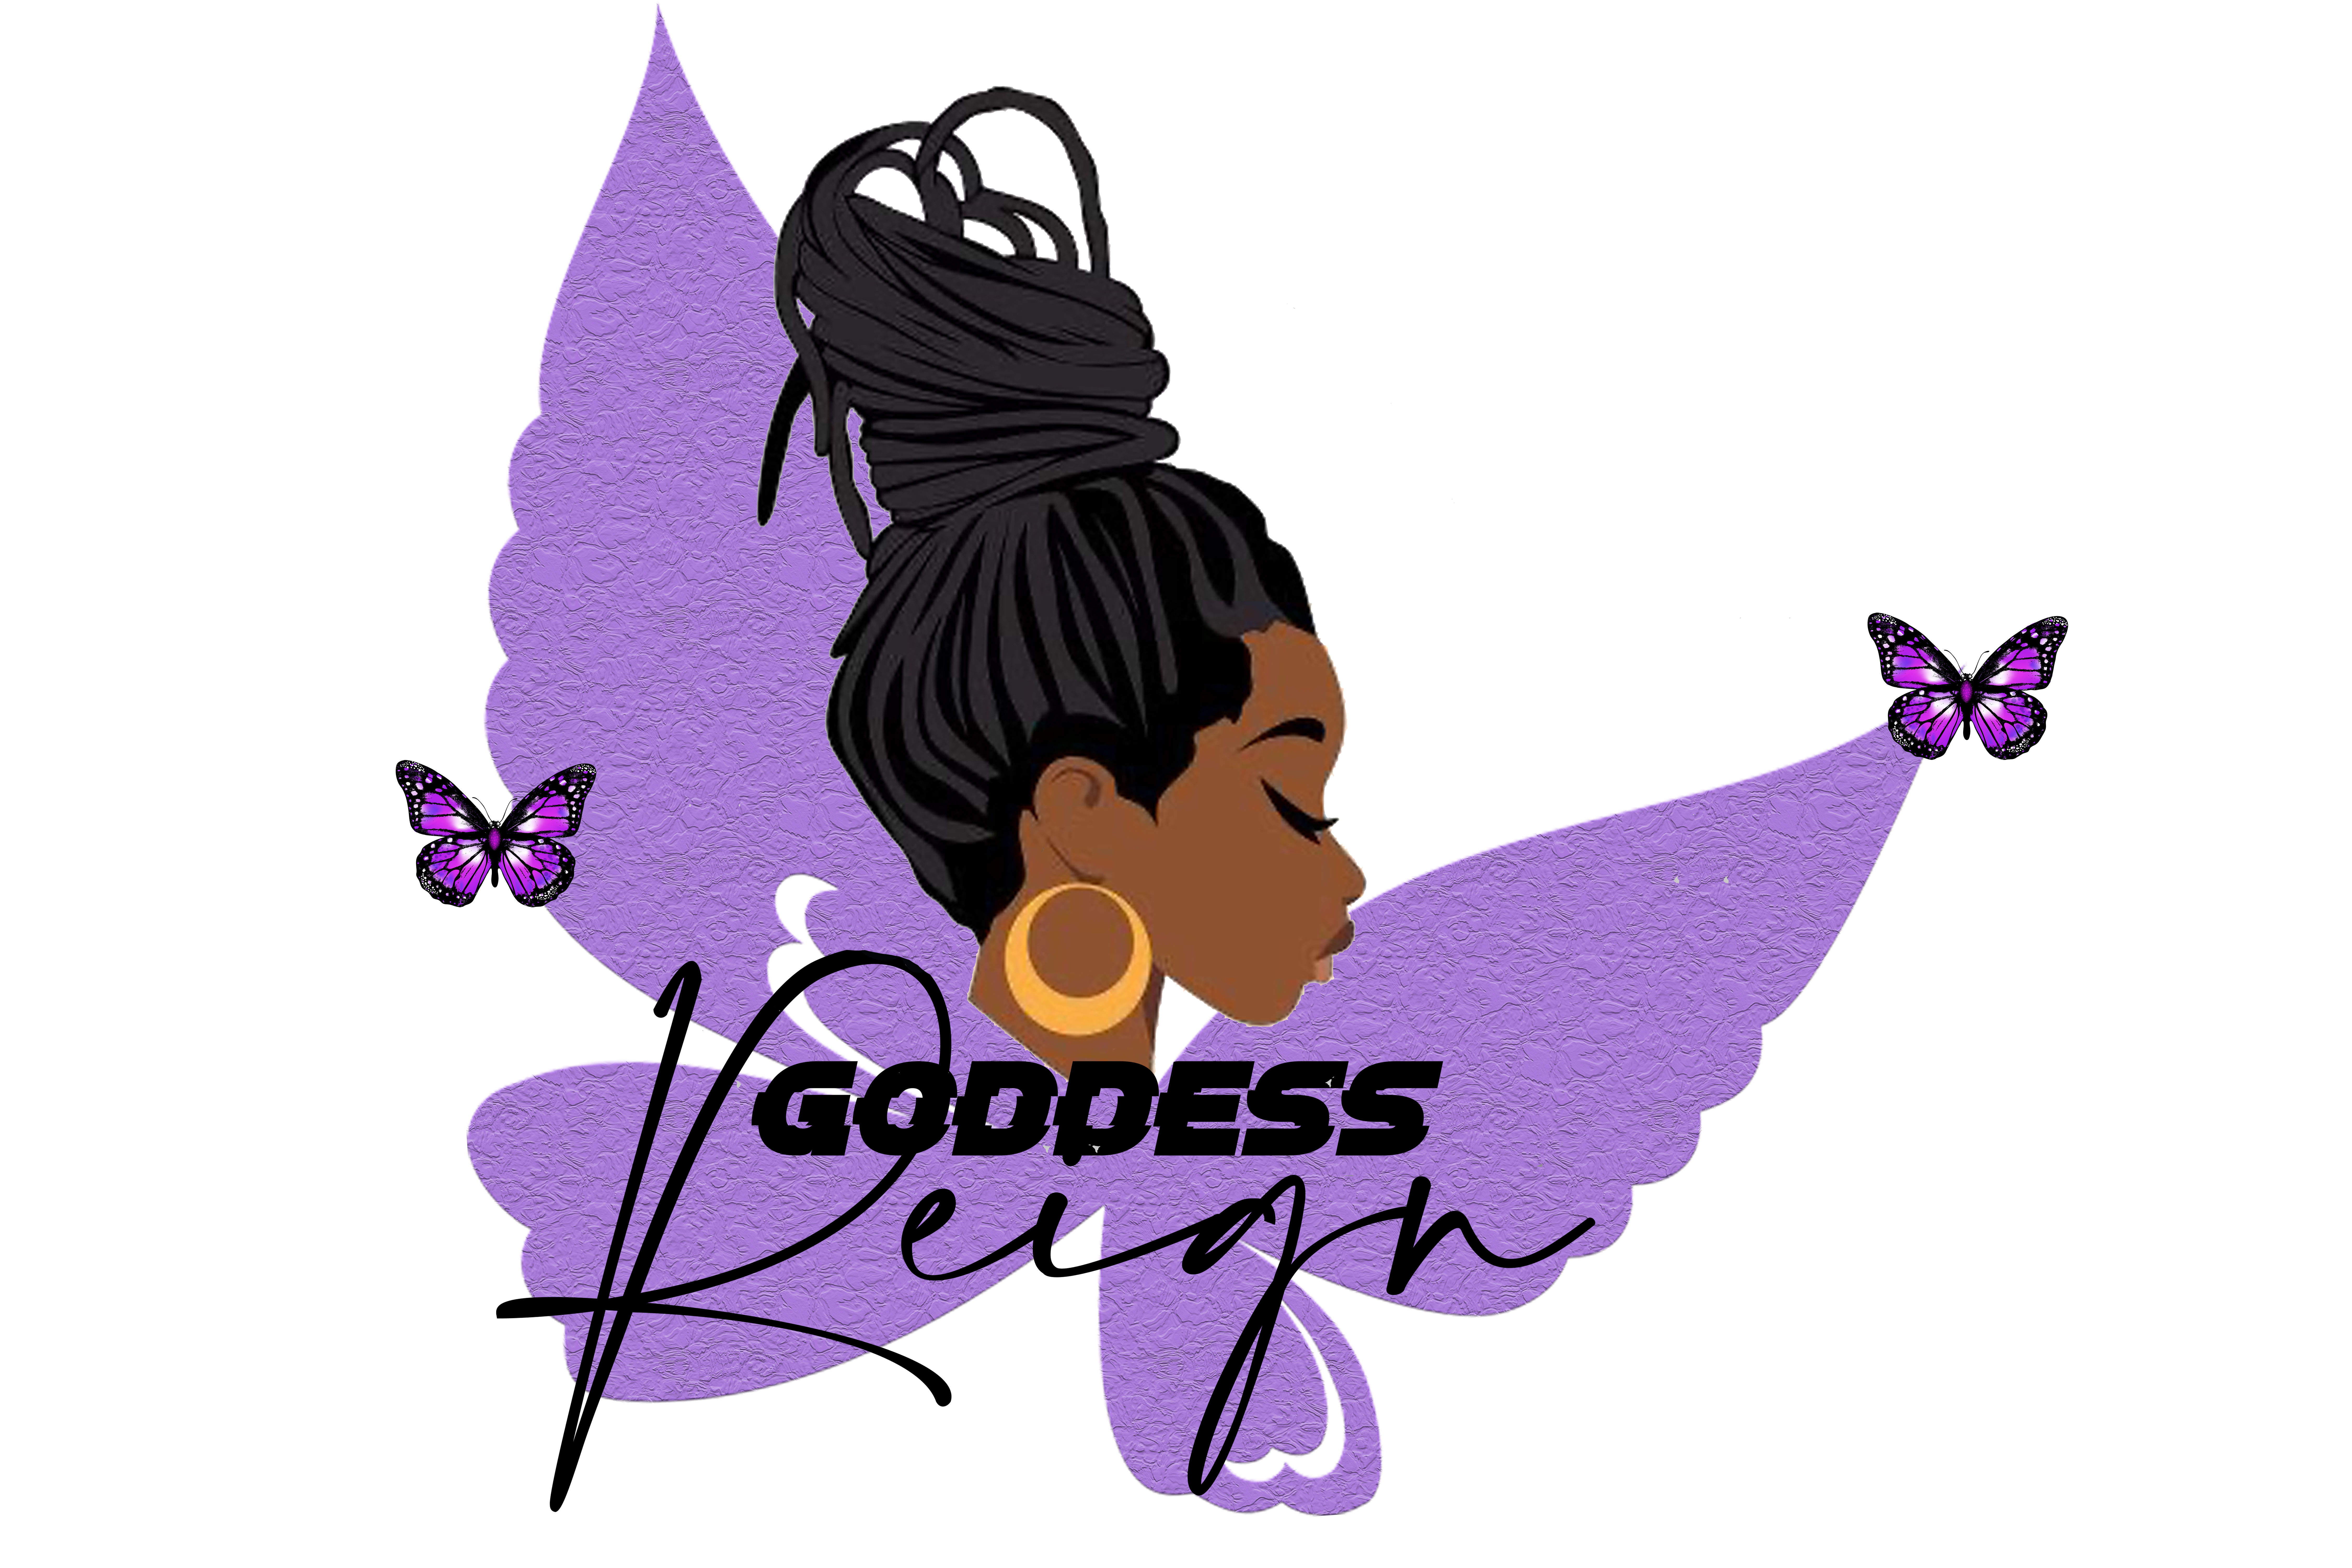 GoddessReign copy